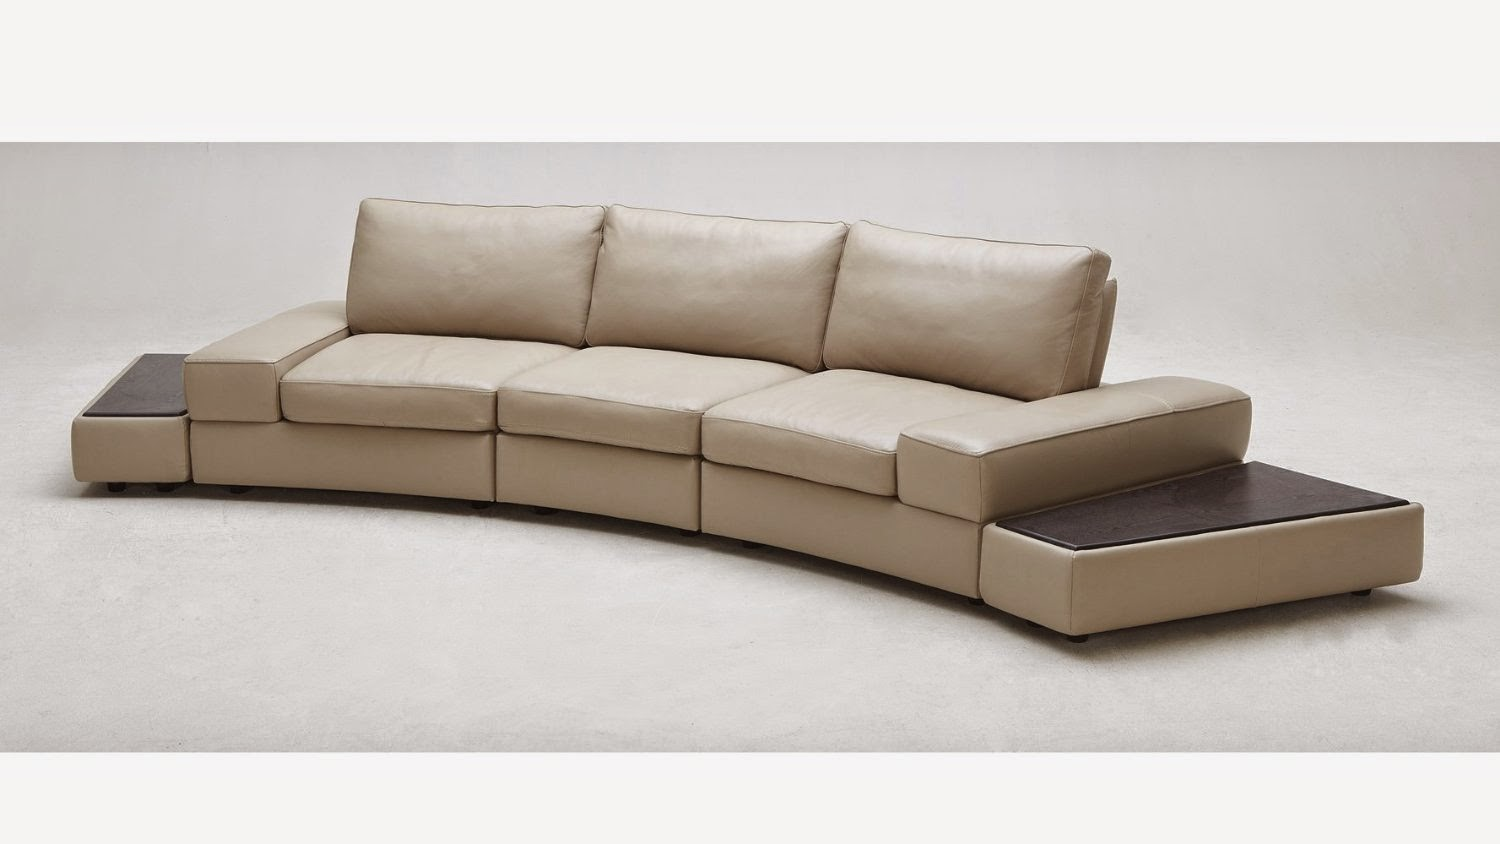 Modern curved sectional sofas